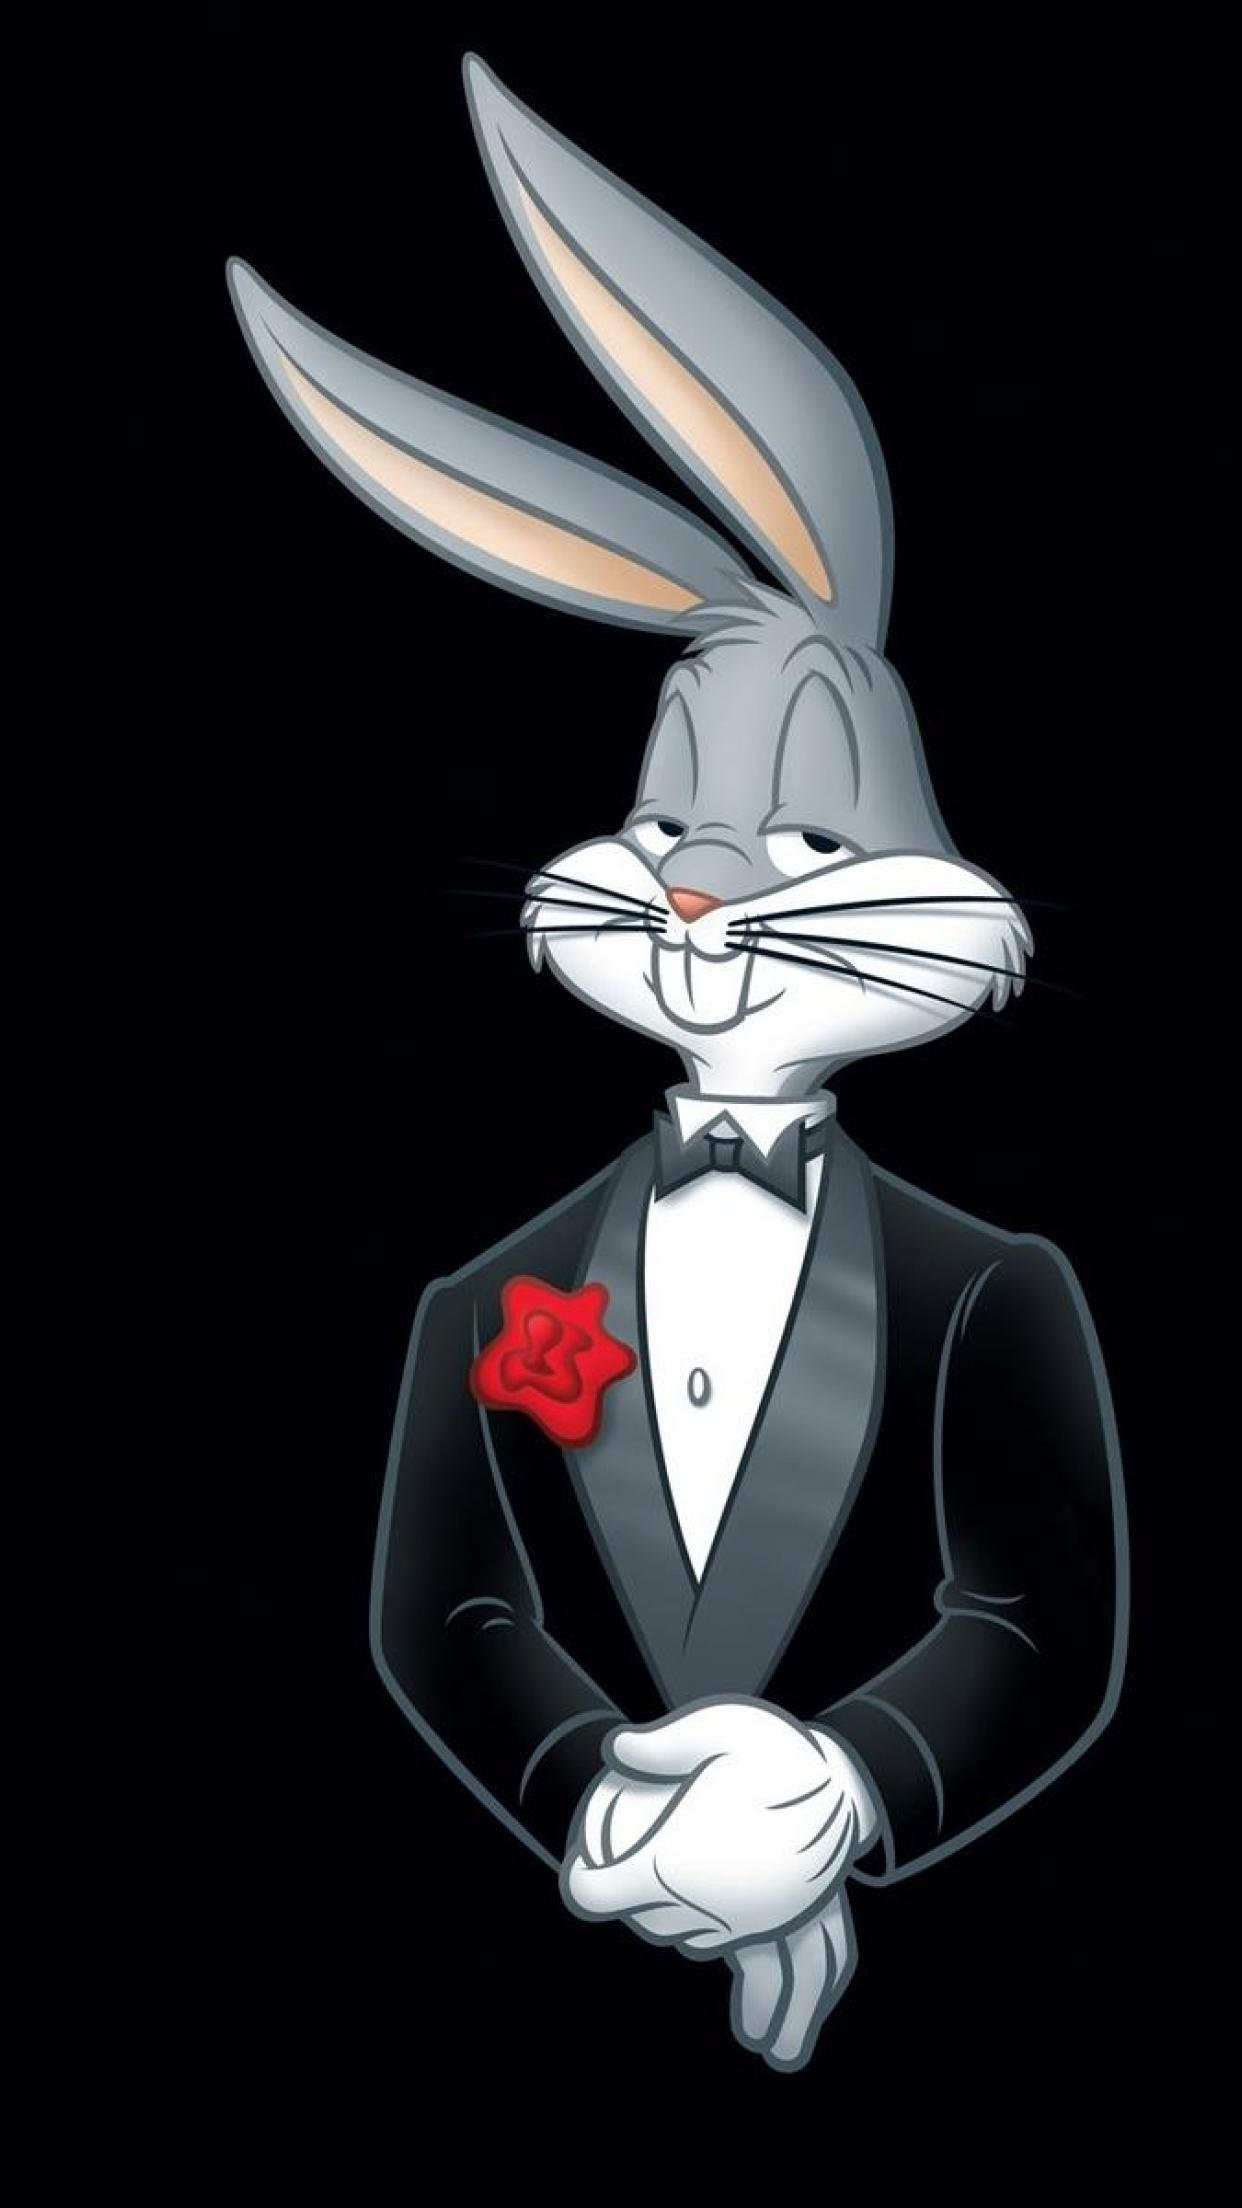 Bugs Bunny Wallpapers WallpaperSafari